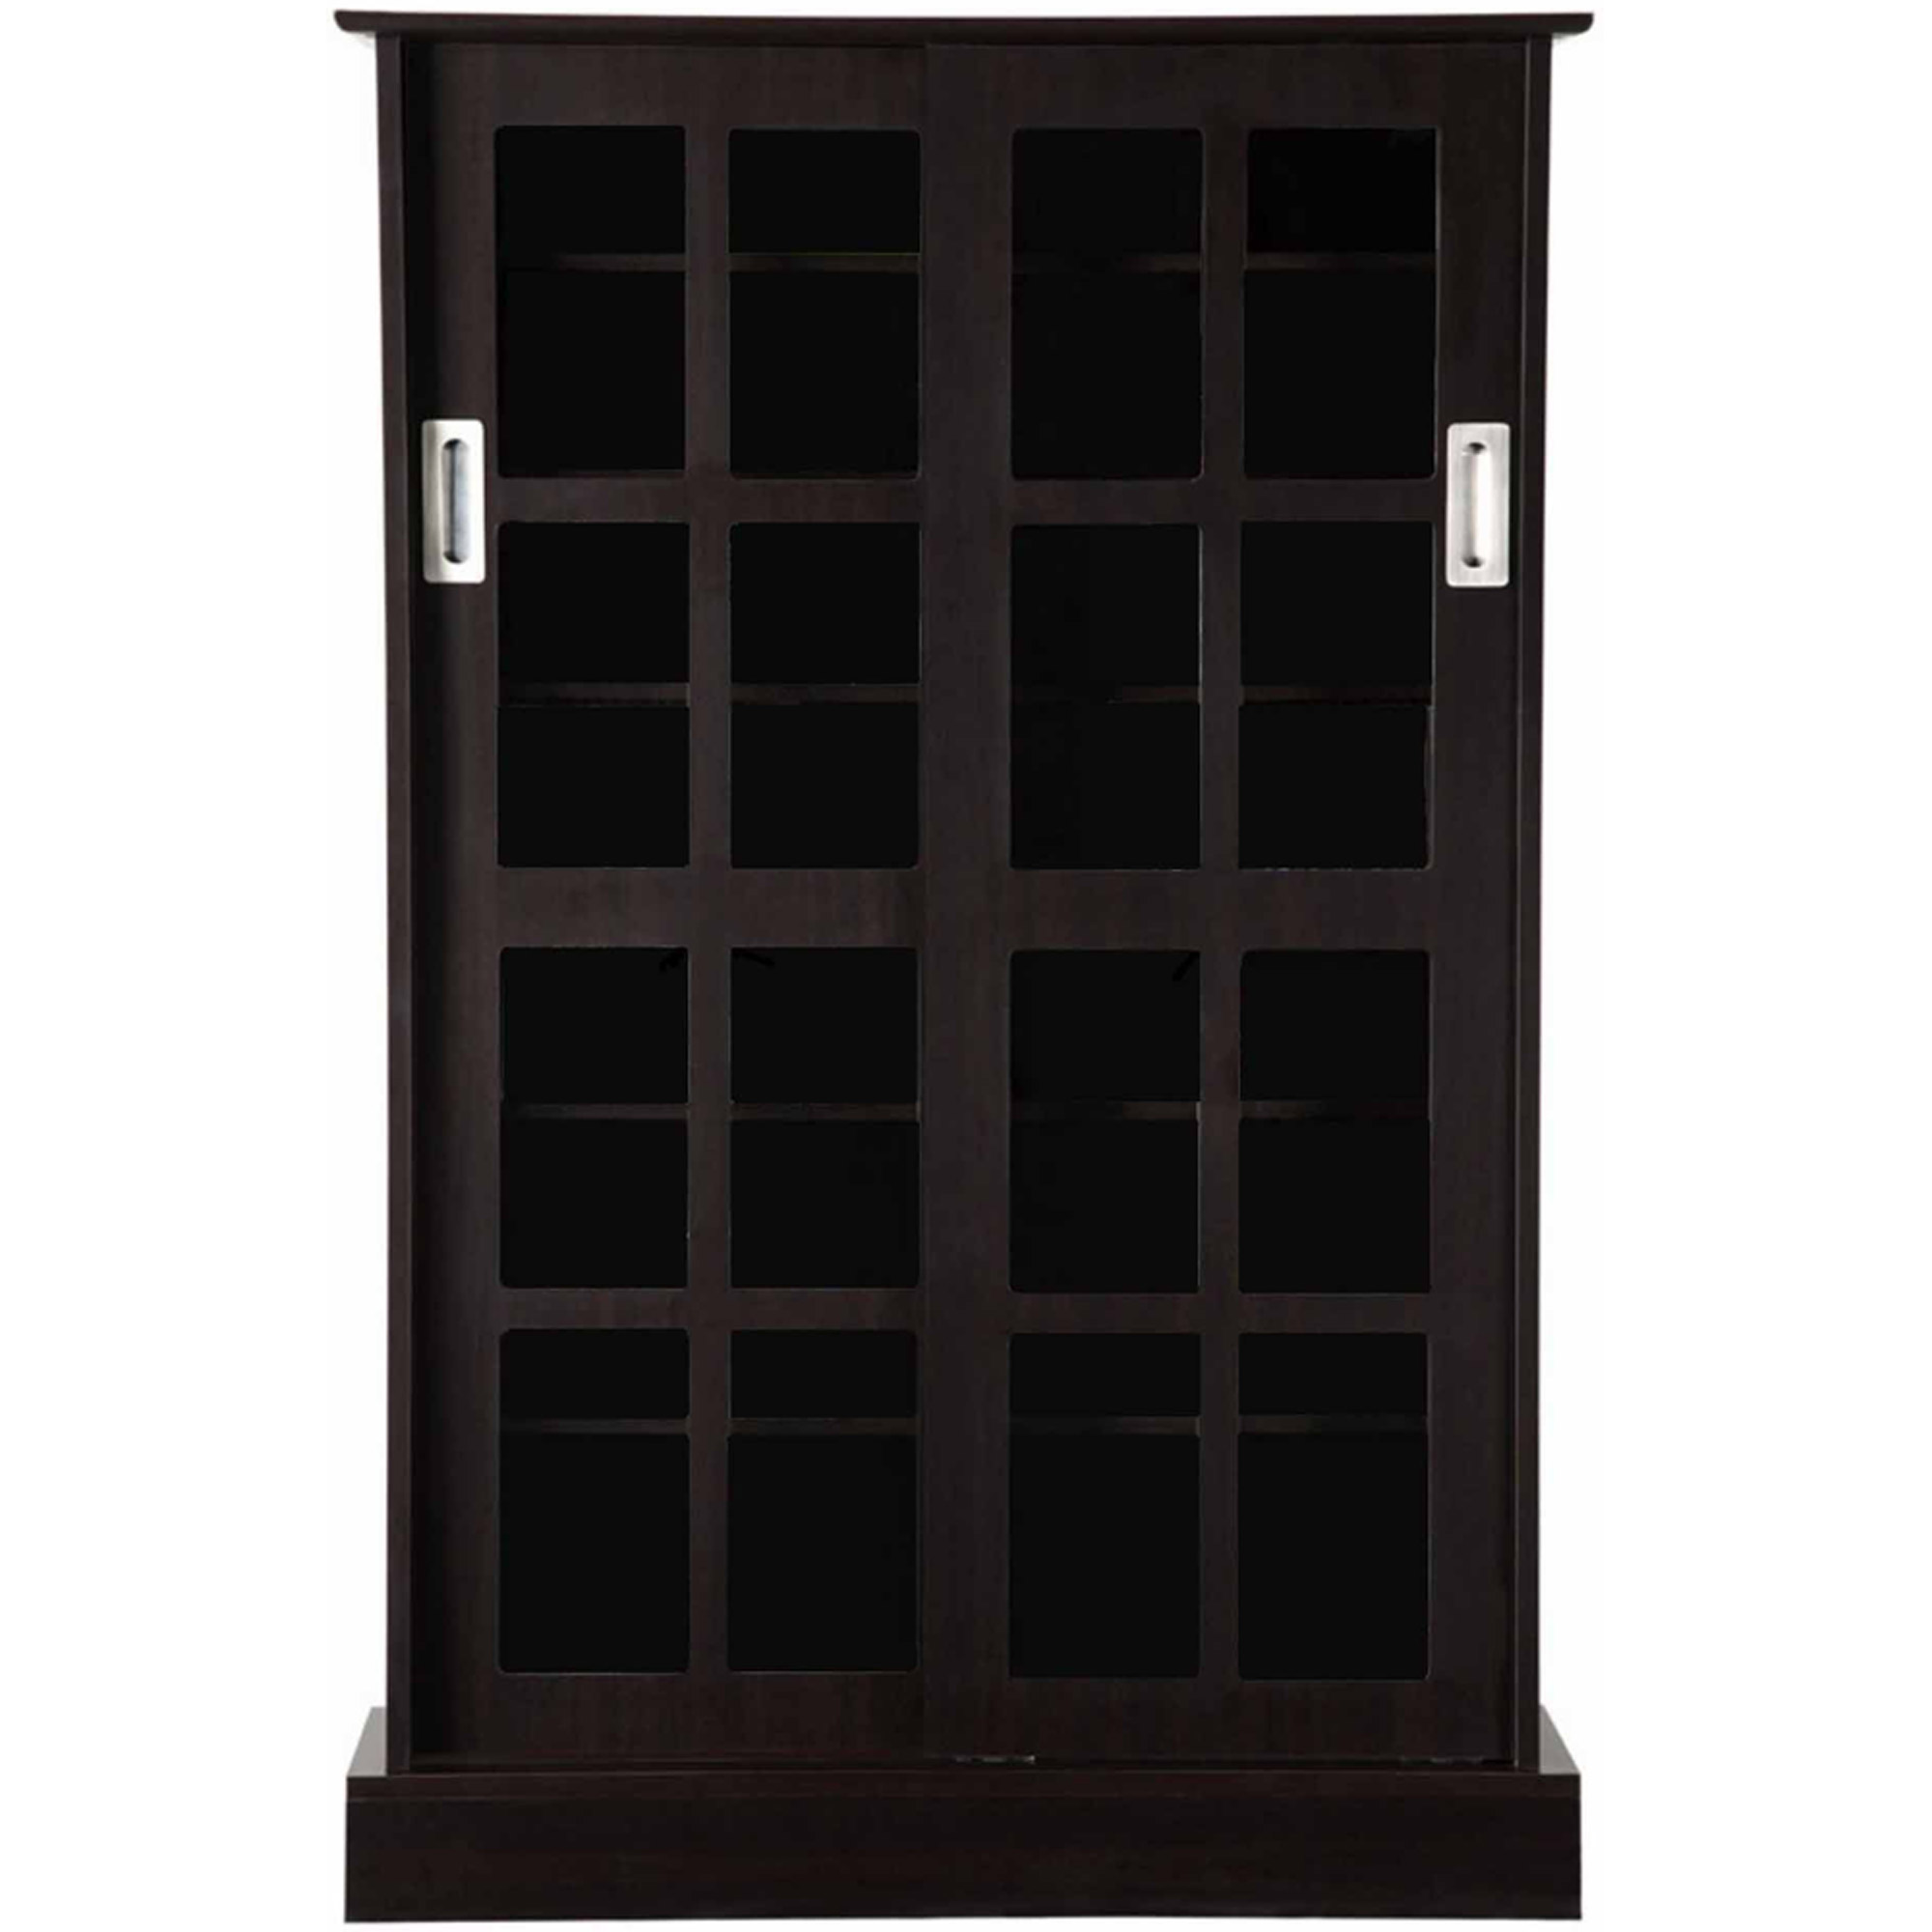 Atlantic Furniture Windowpane Media Cabinet, Espresso by Atlantic Furniture